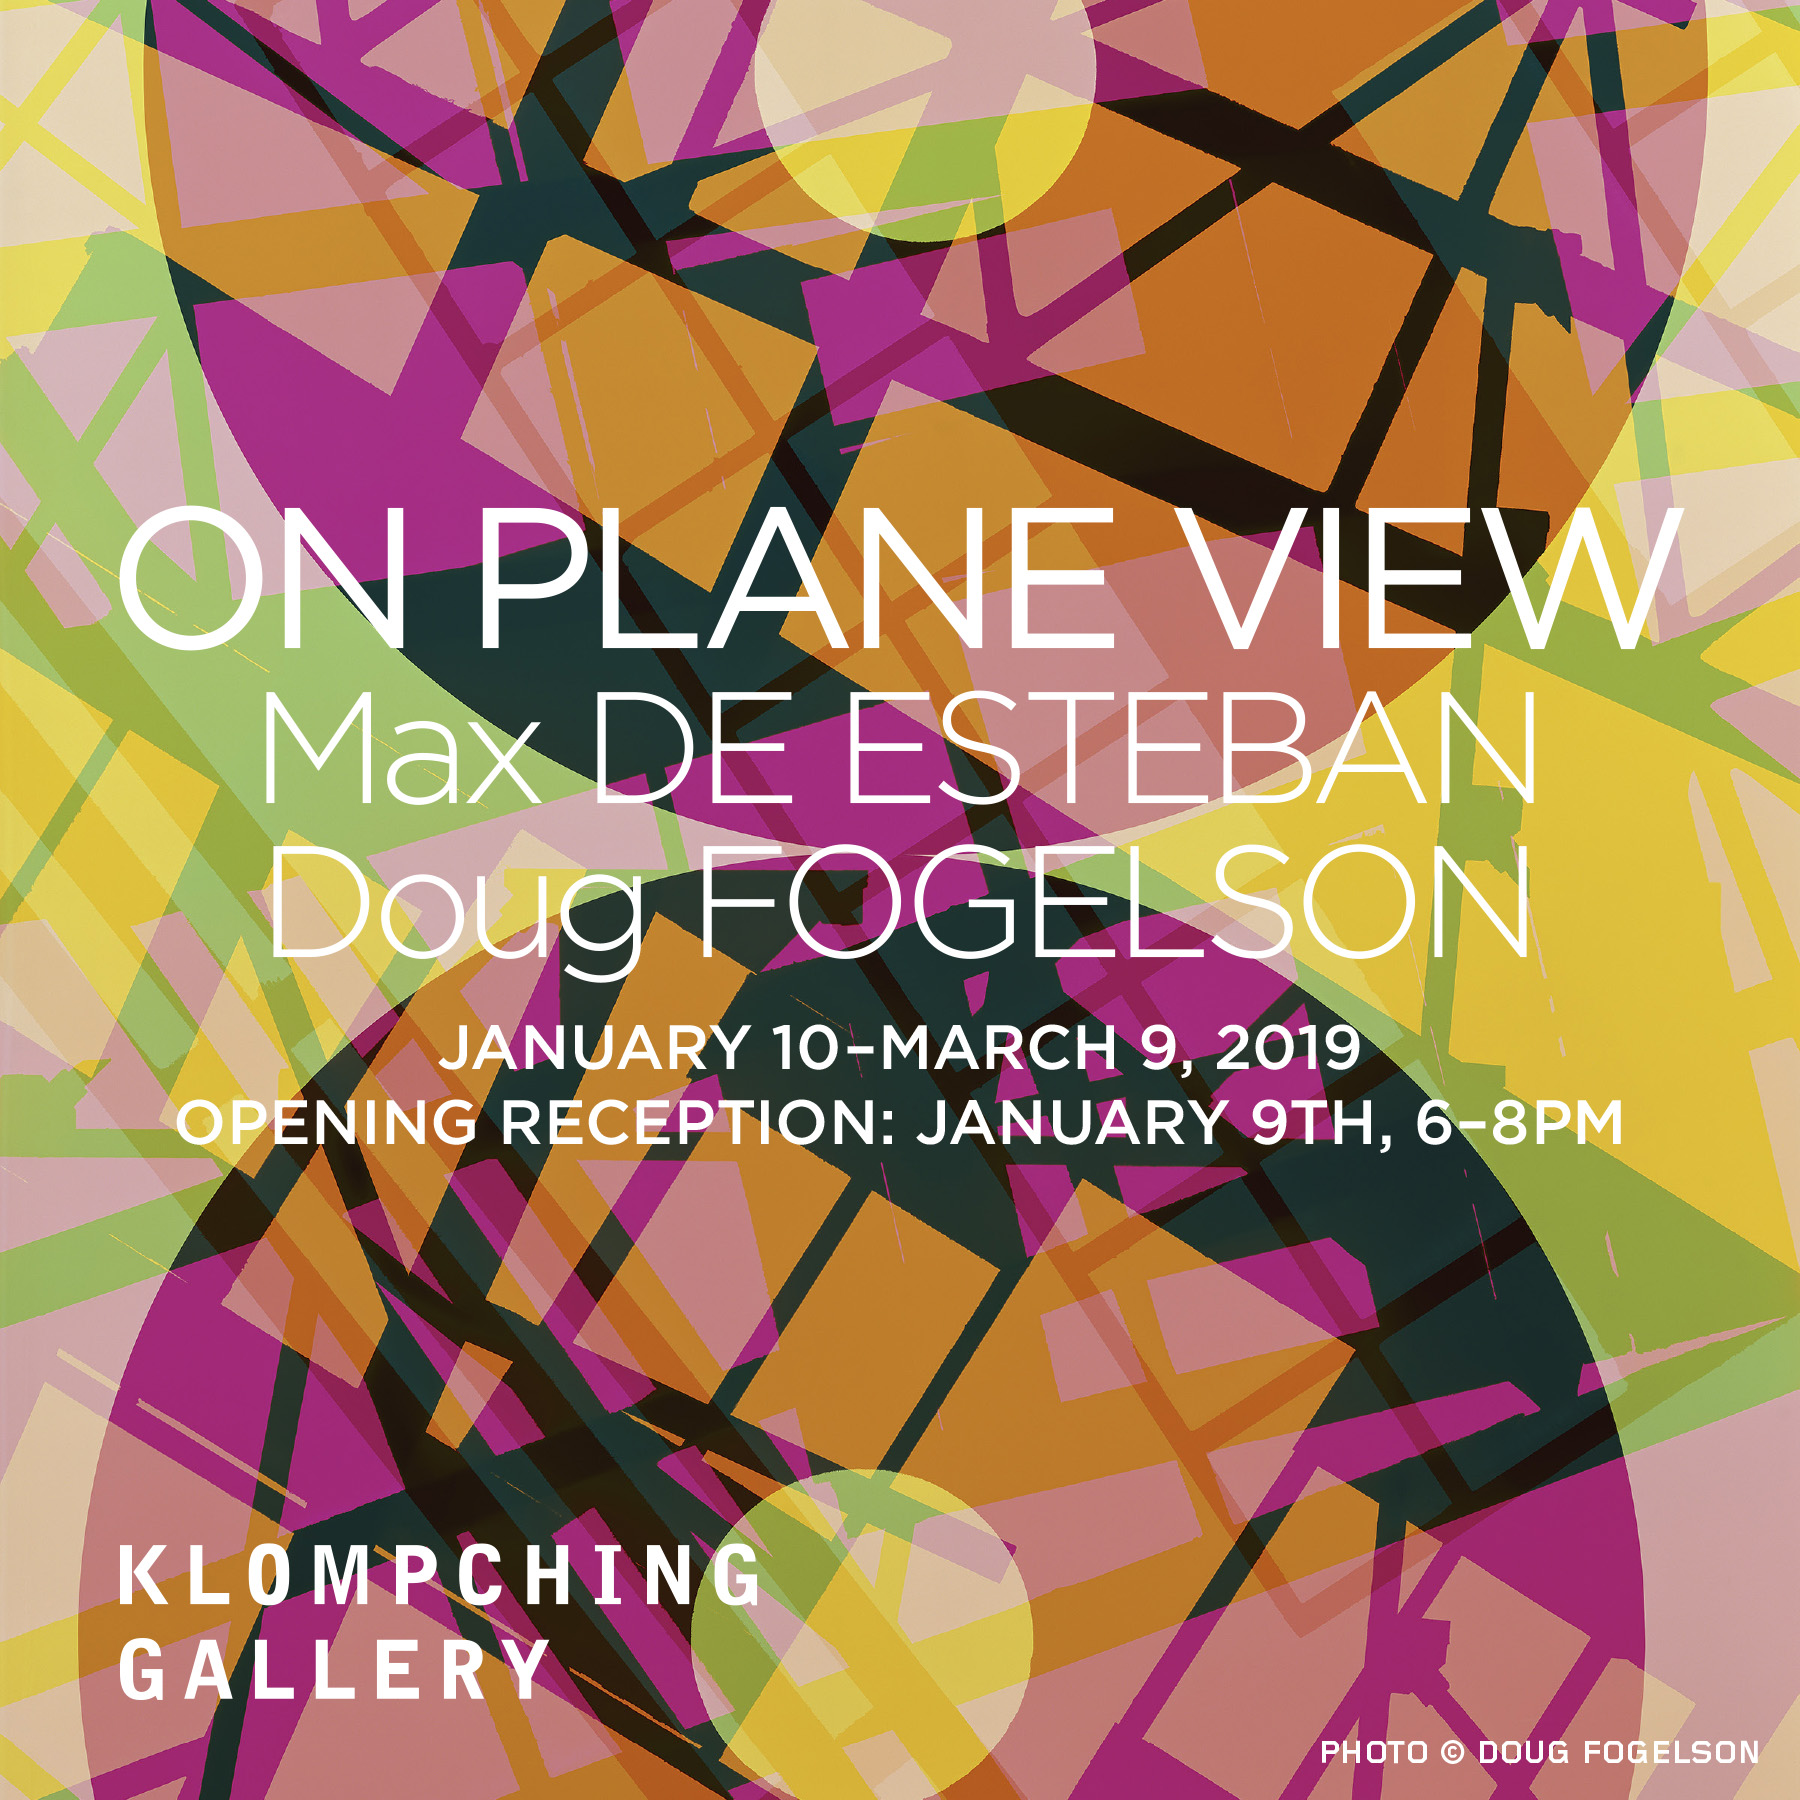 A click-through image graphic for the exhibition 'On Plane View', January 10th to March 9th, 2019.